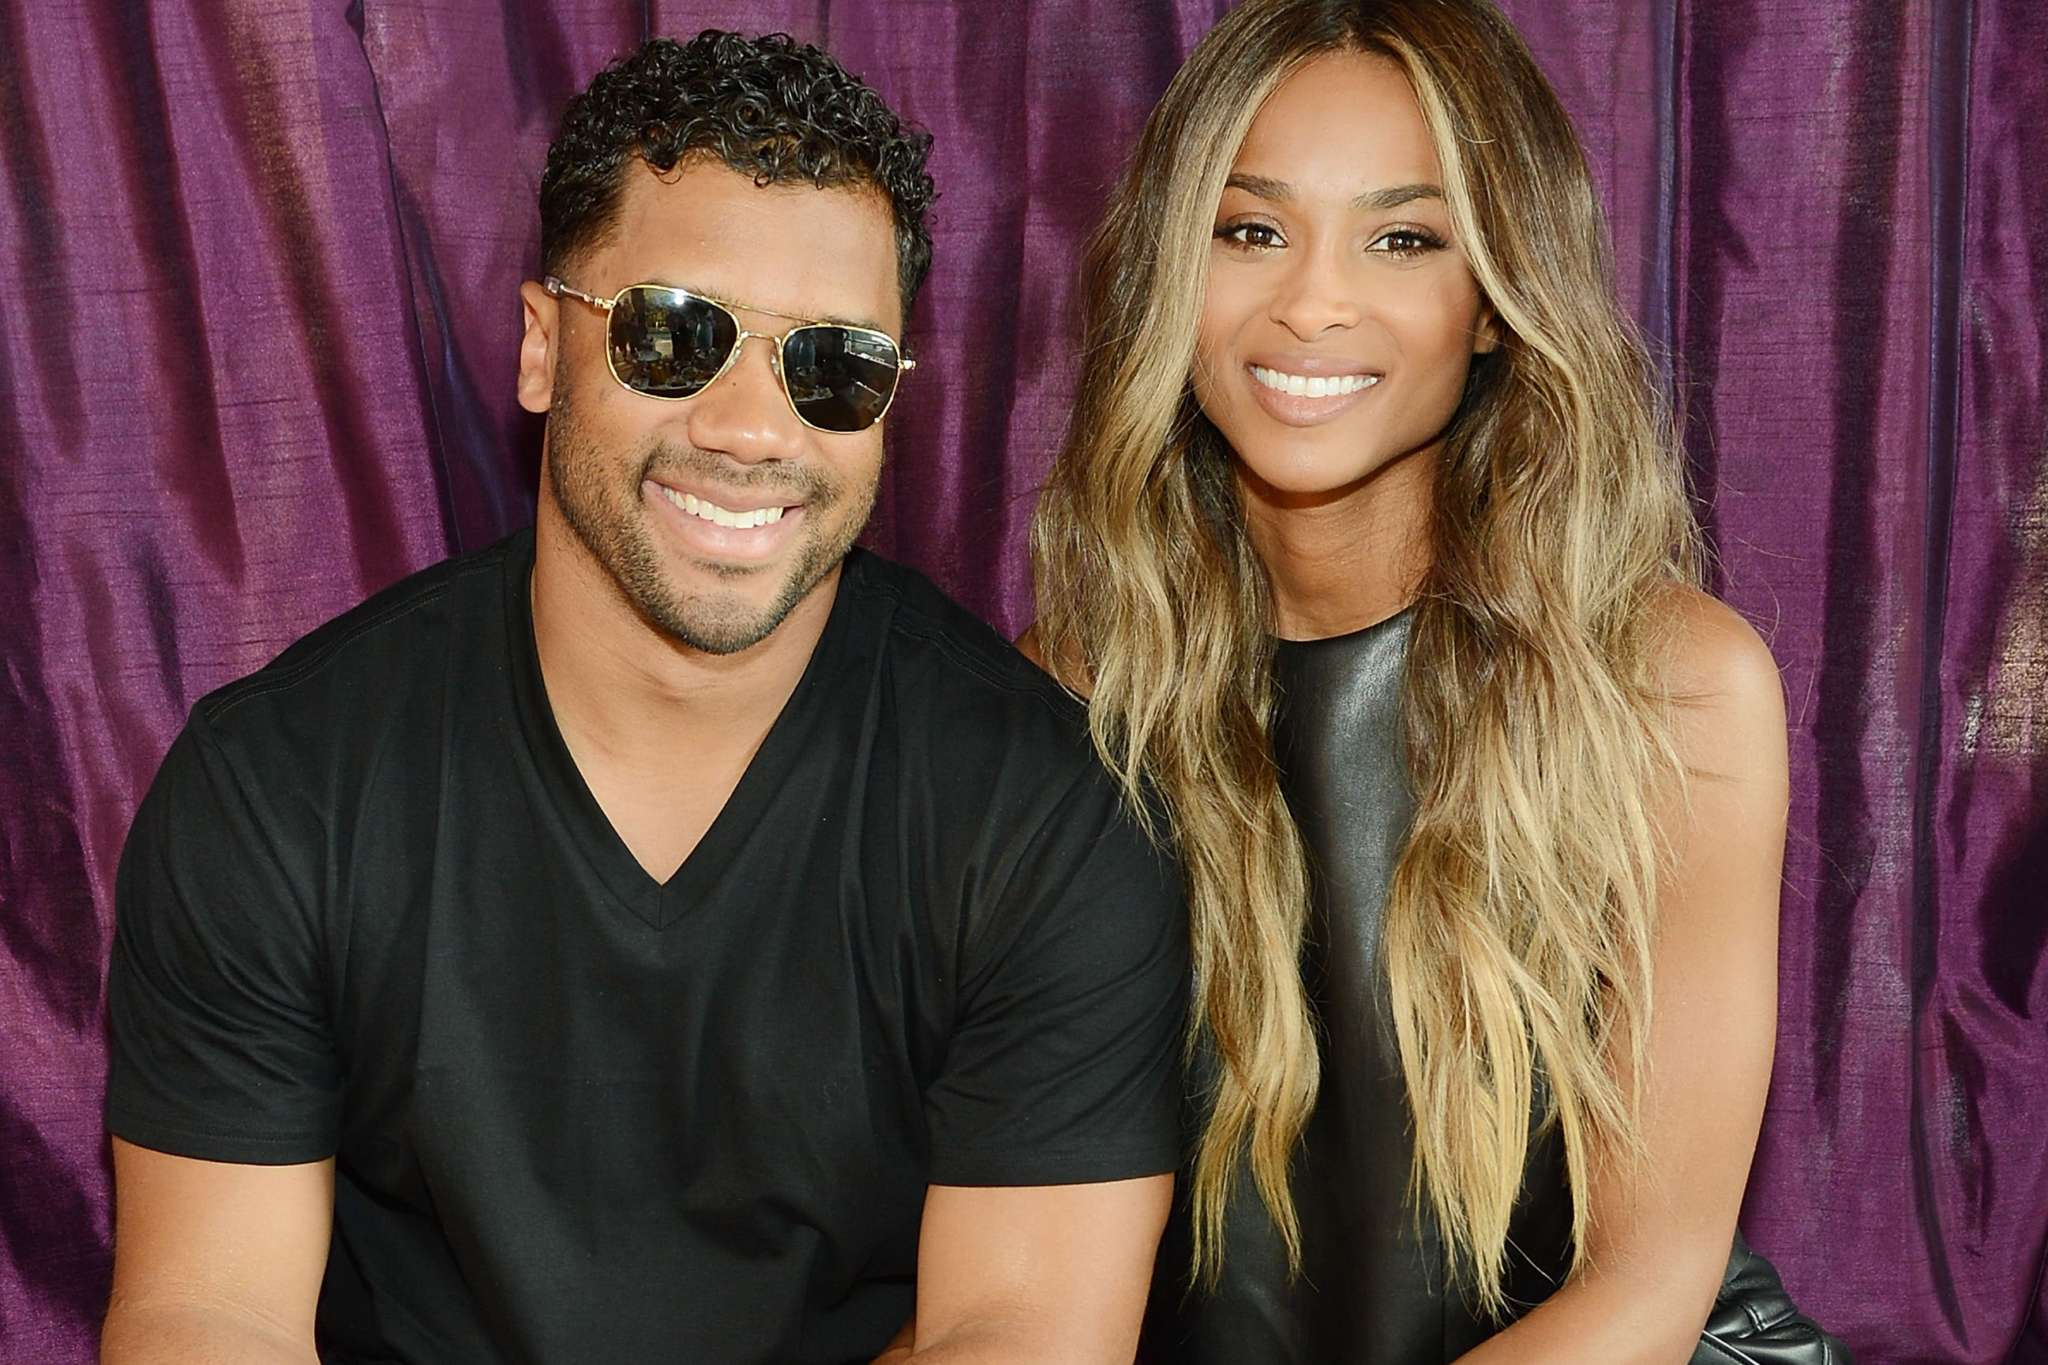 ciara-makes-fans-happy-with-a-pregnancy-photo-shoot-shes-flaunting-her-flawless-body-in-a-swimsuit